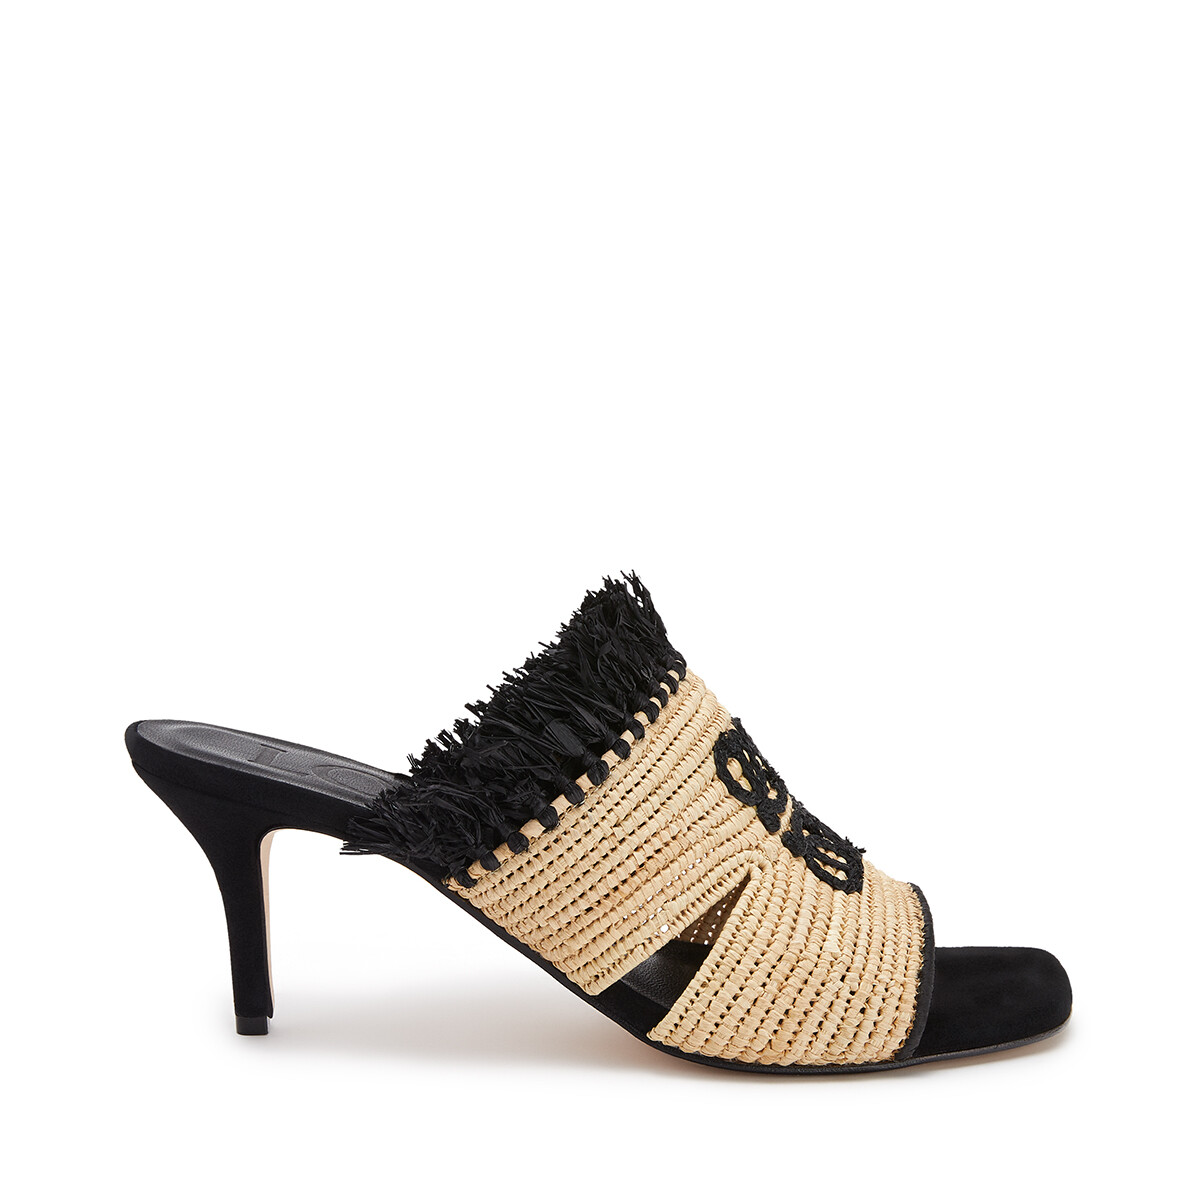 LOEWE Embroidered 70 Mule In Raffia Natural/Black front